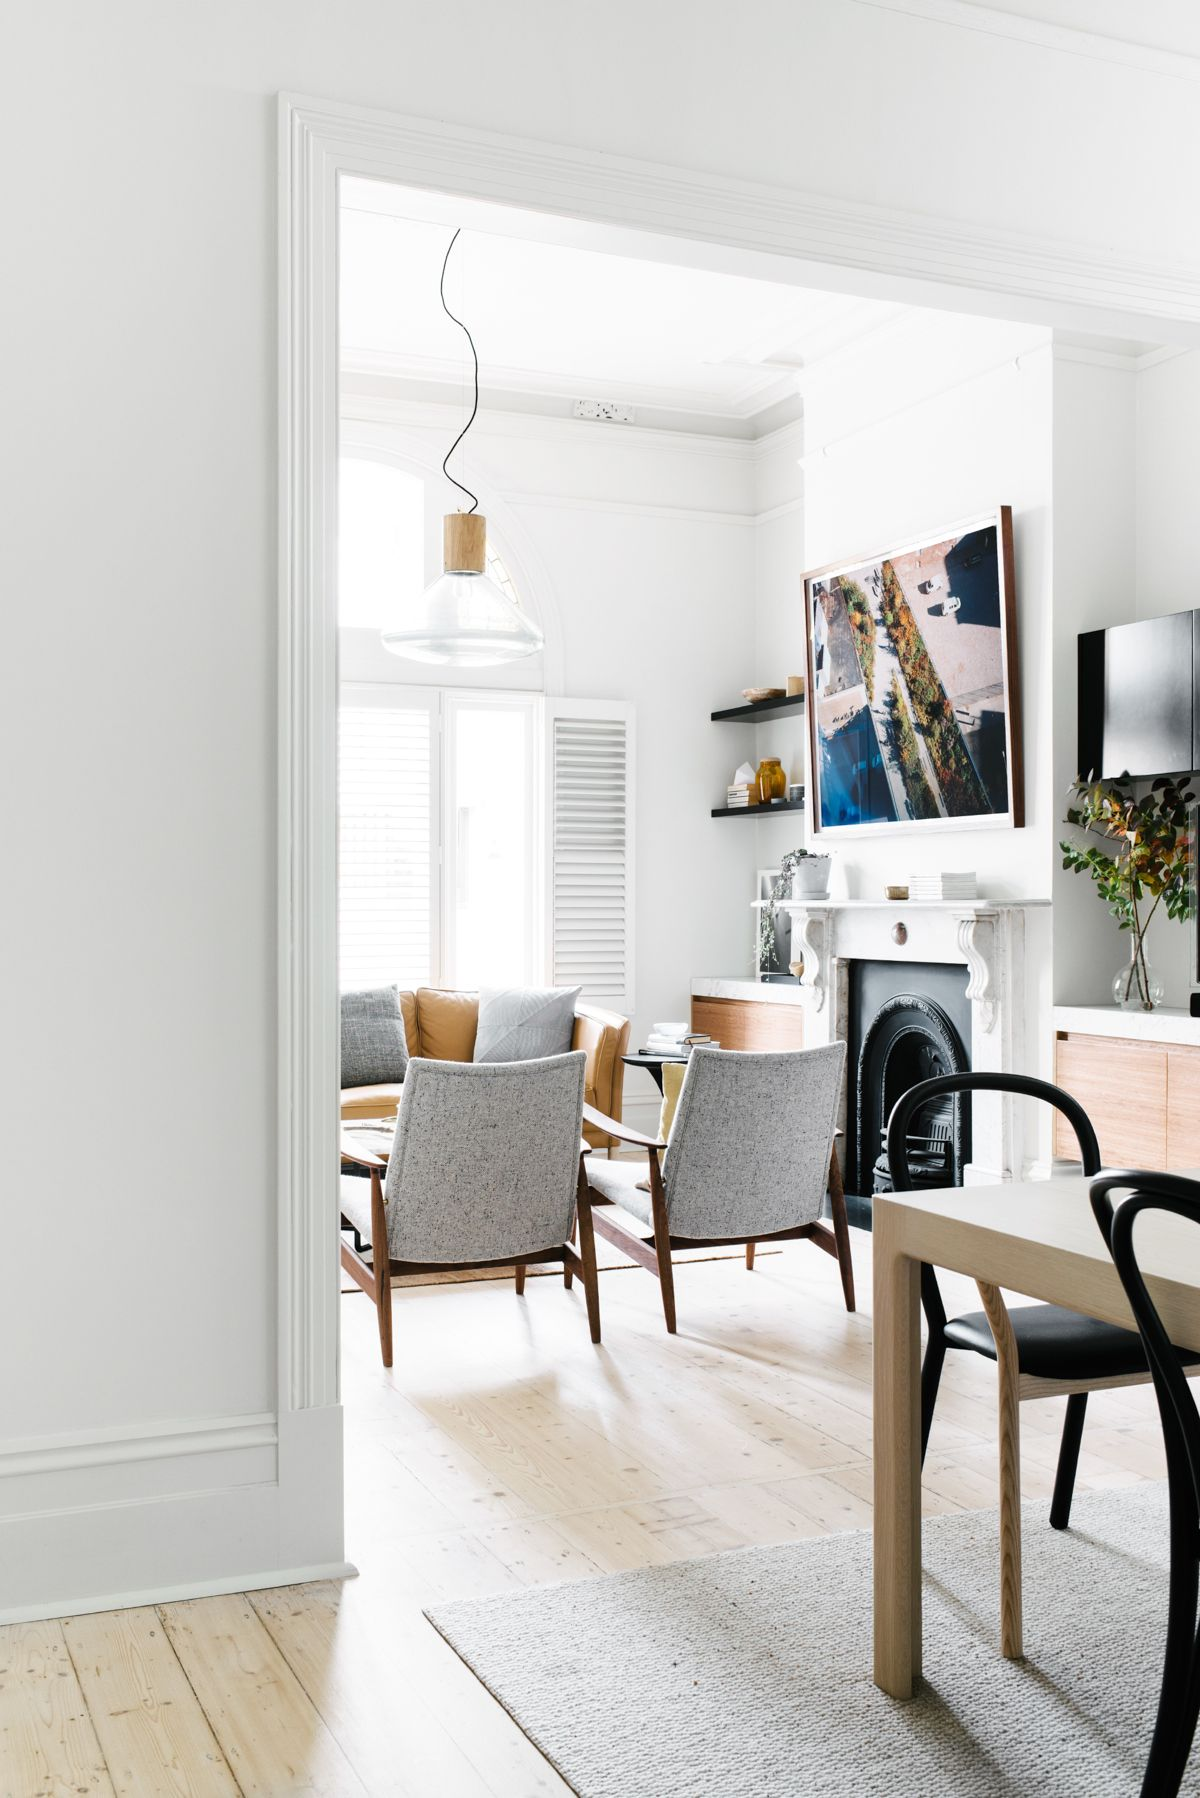 a scandinavian inspired renovation has transformed this